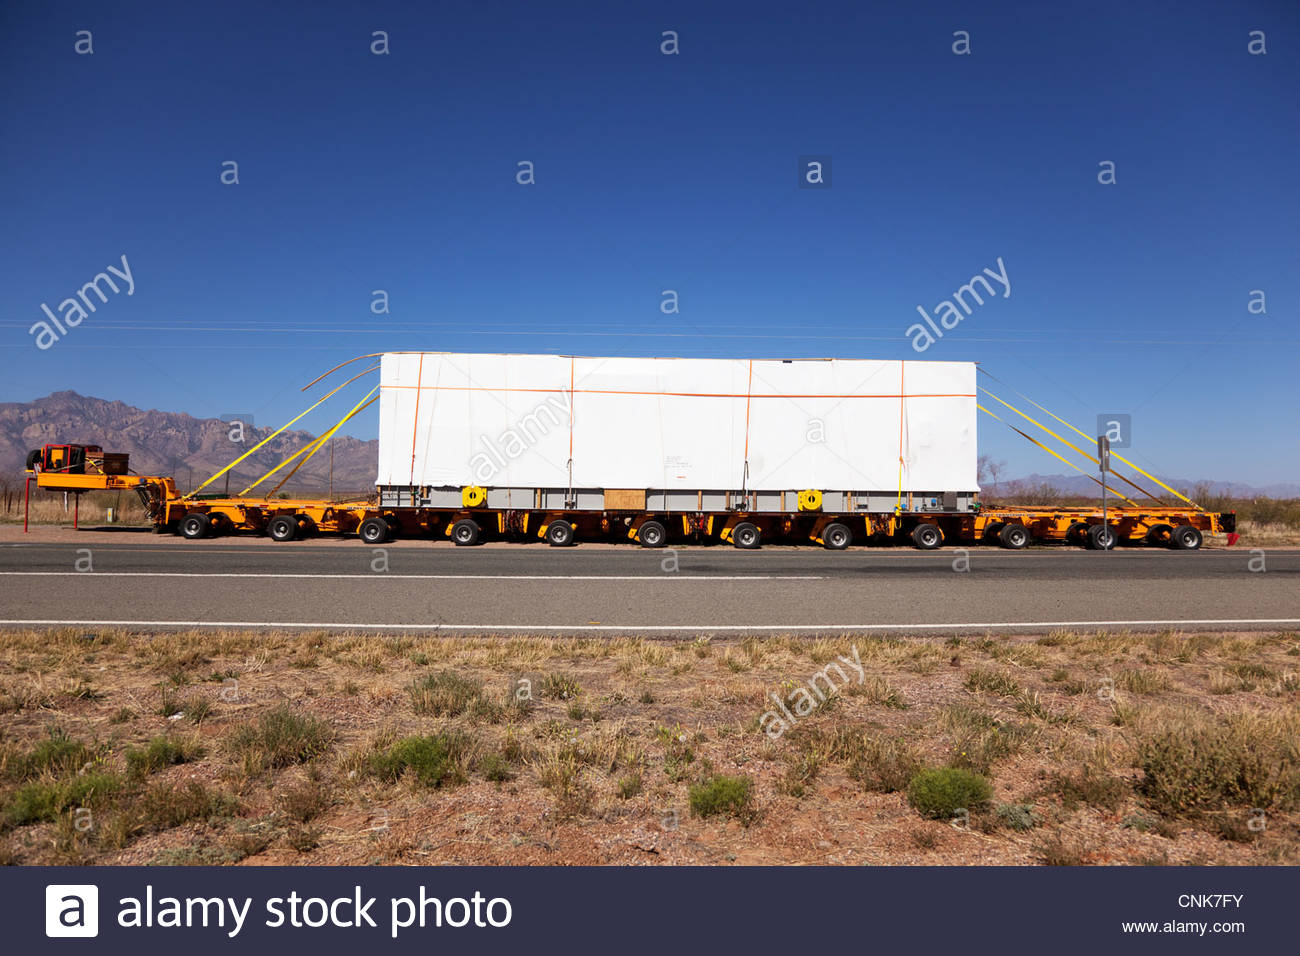 Heavy hauling oversize load parked 'New Mexico' - Stock Image